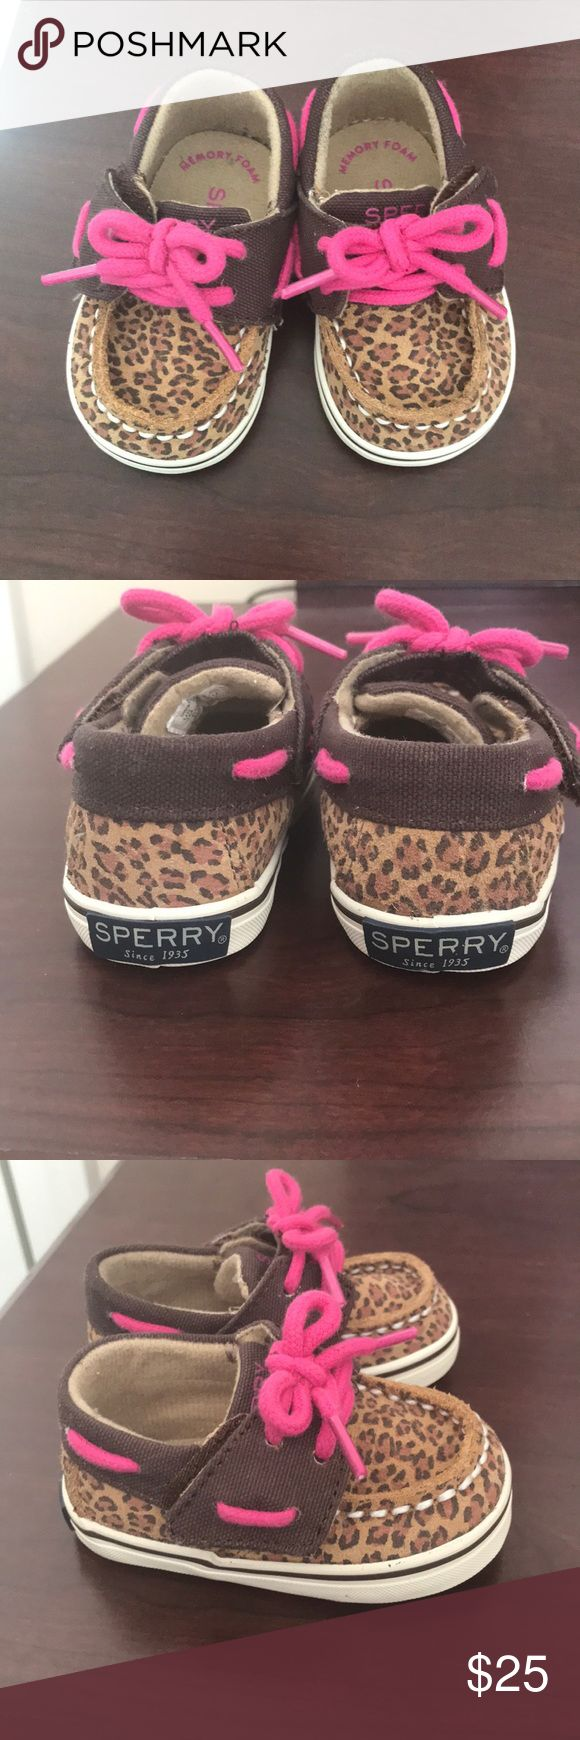 Infant Girl Sperry's size 1 Leopard print Sperry's Sperry Top-Sider Shoes Sneakers